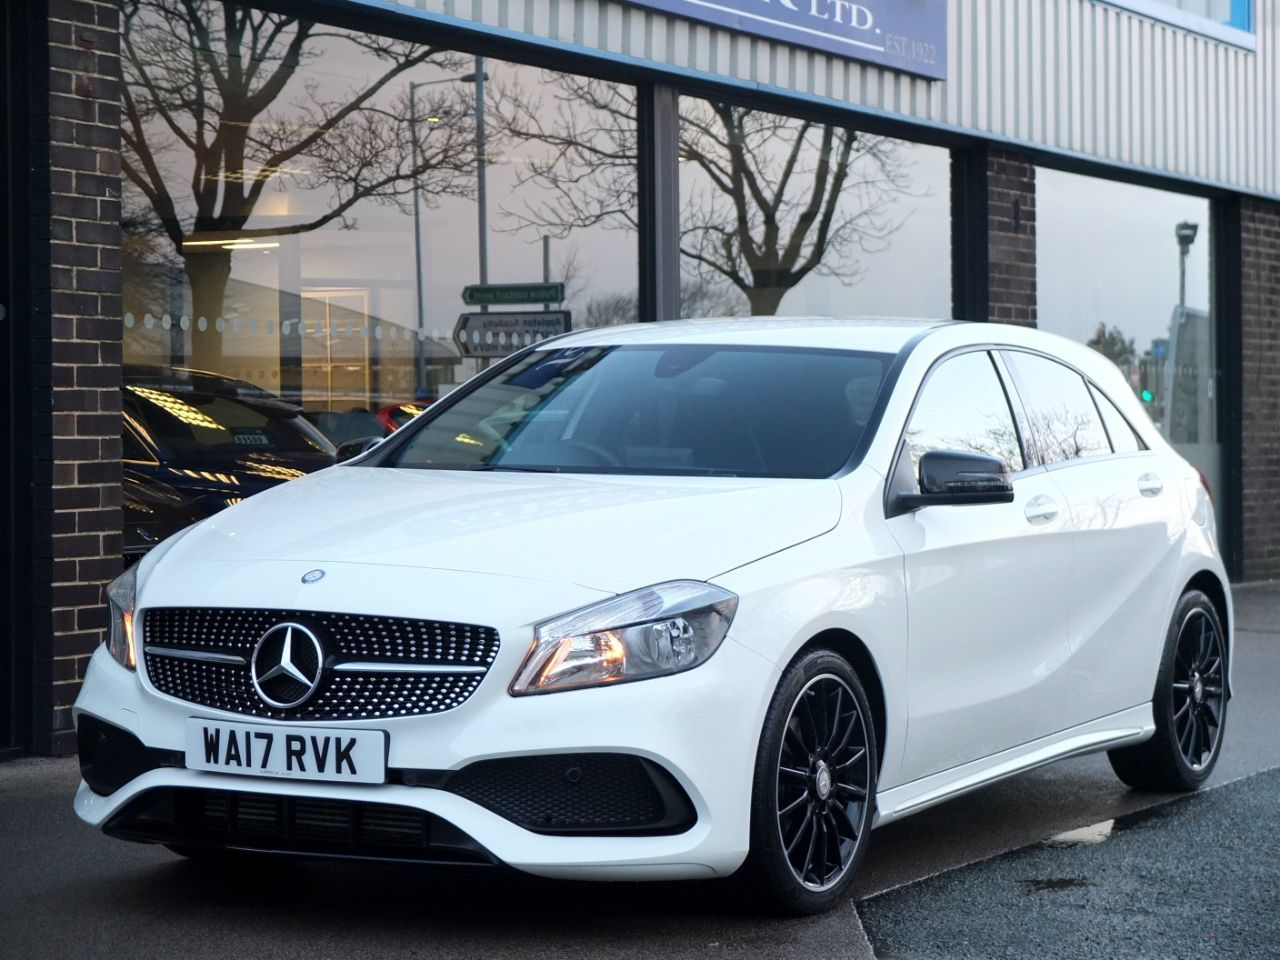 Mercedes-Benz A Class 1.6 A160 AMG Line 5 door Night Pack Hatchback Petrol Cirrus WhiteMercedes-Benz A Class 1.6 A160 AMG Line 5 door Night Pack Hatchback Petrol Cirrus White at fa Roper Ltd Bradford